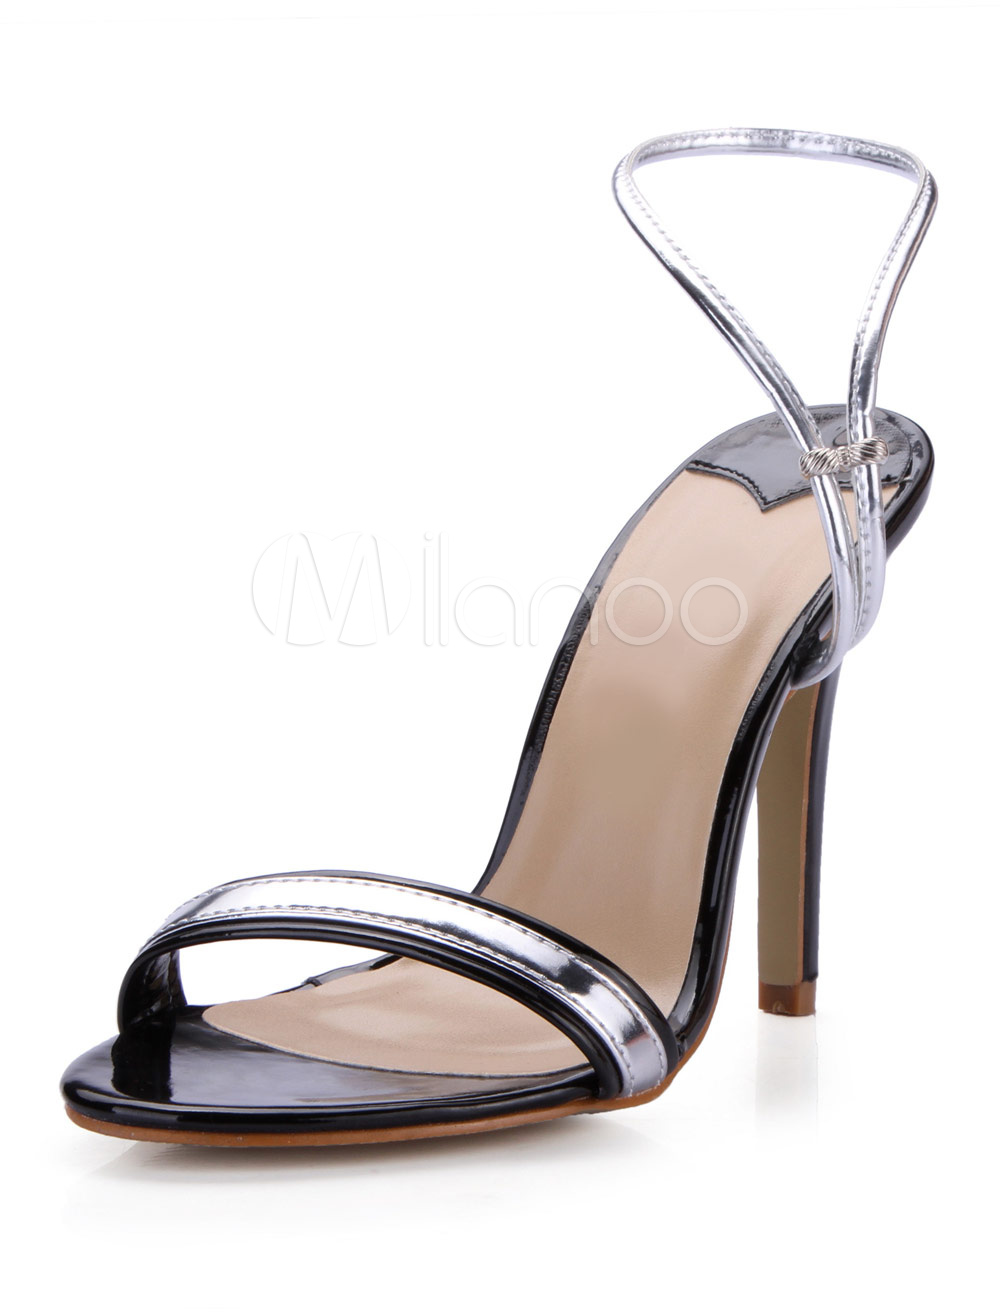 Silver PU Leather Metallic Dress Sandals For Woman